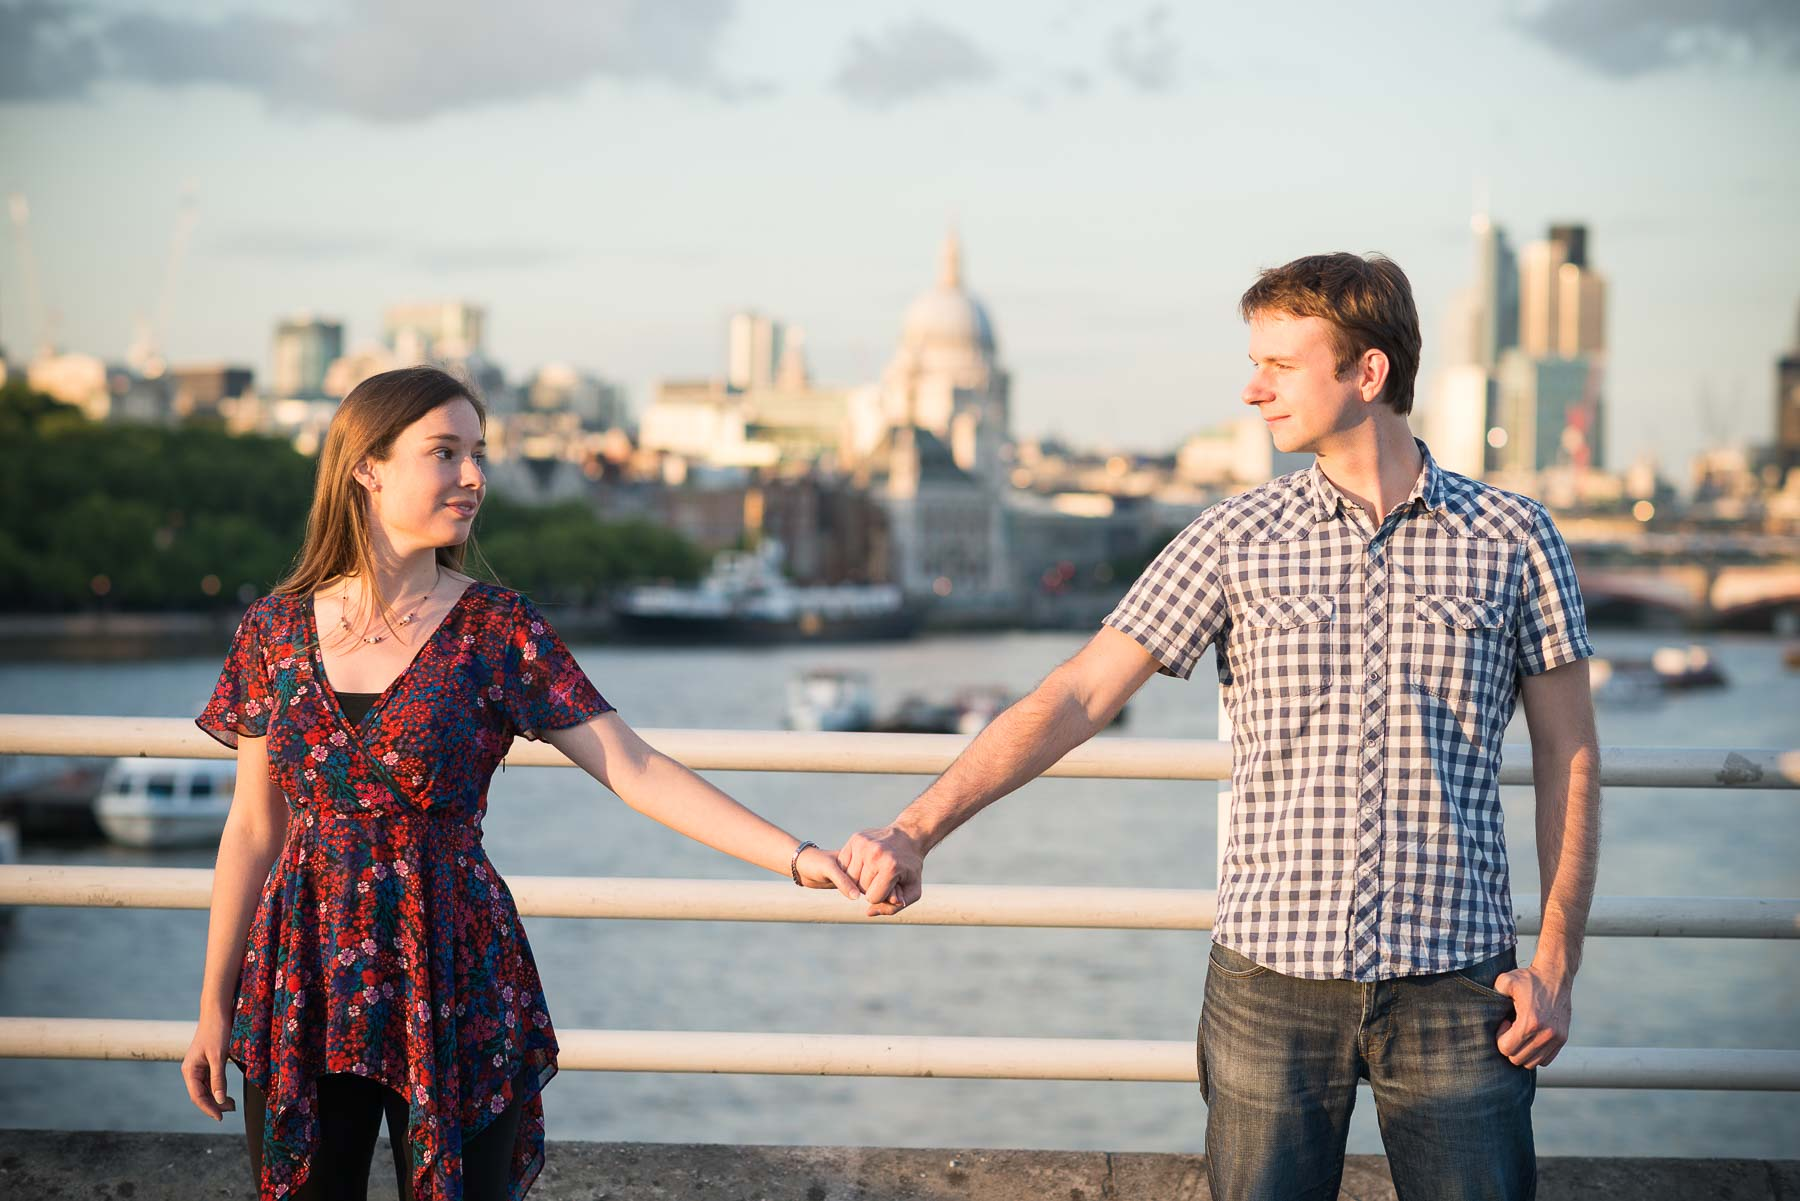 waterloo-bridge-london-engagement-shoot-skyline-12